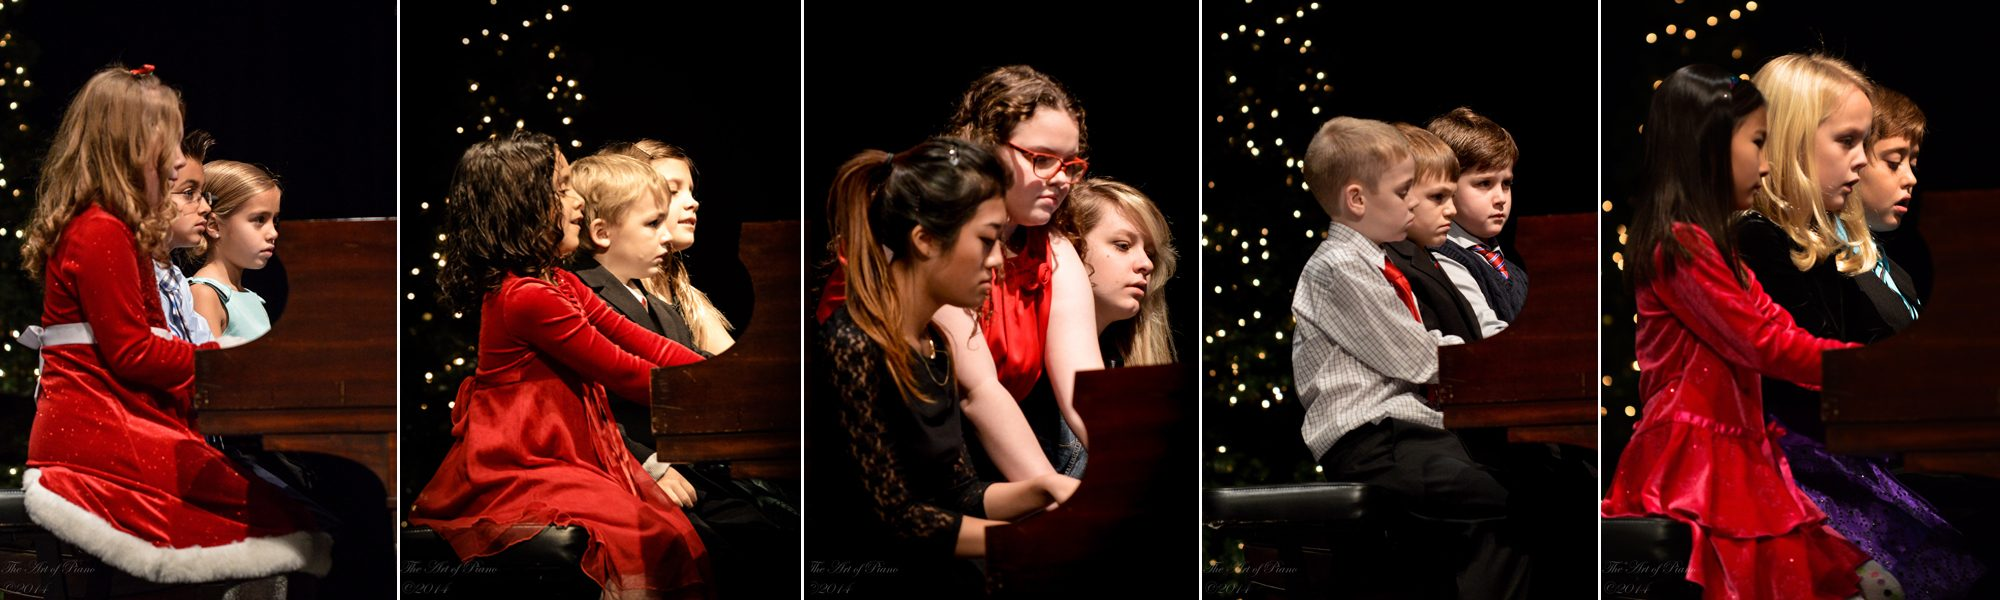 The Art of Piano student trios at the 2014 Winter Recital